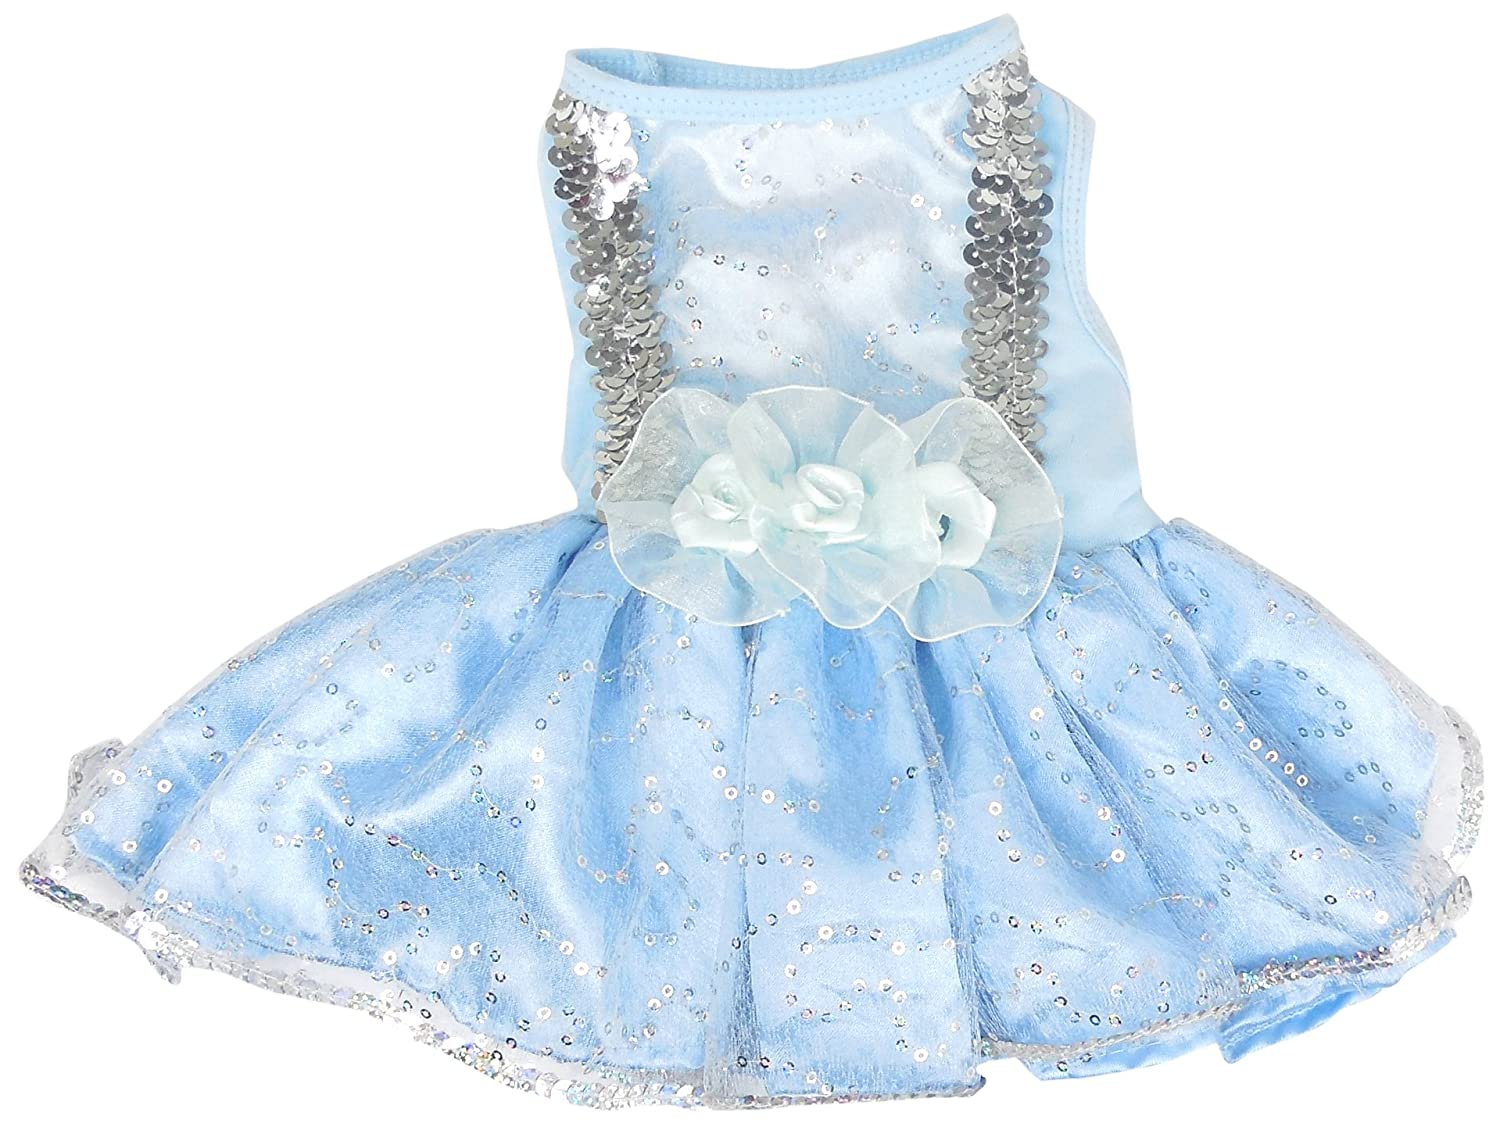 PAWPATU Cinderella Costume for Dogs, X-Small, bluee